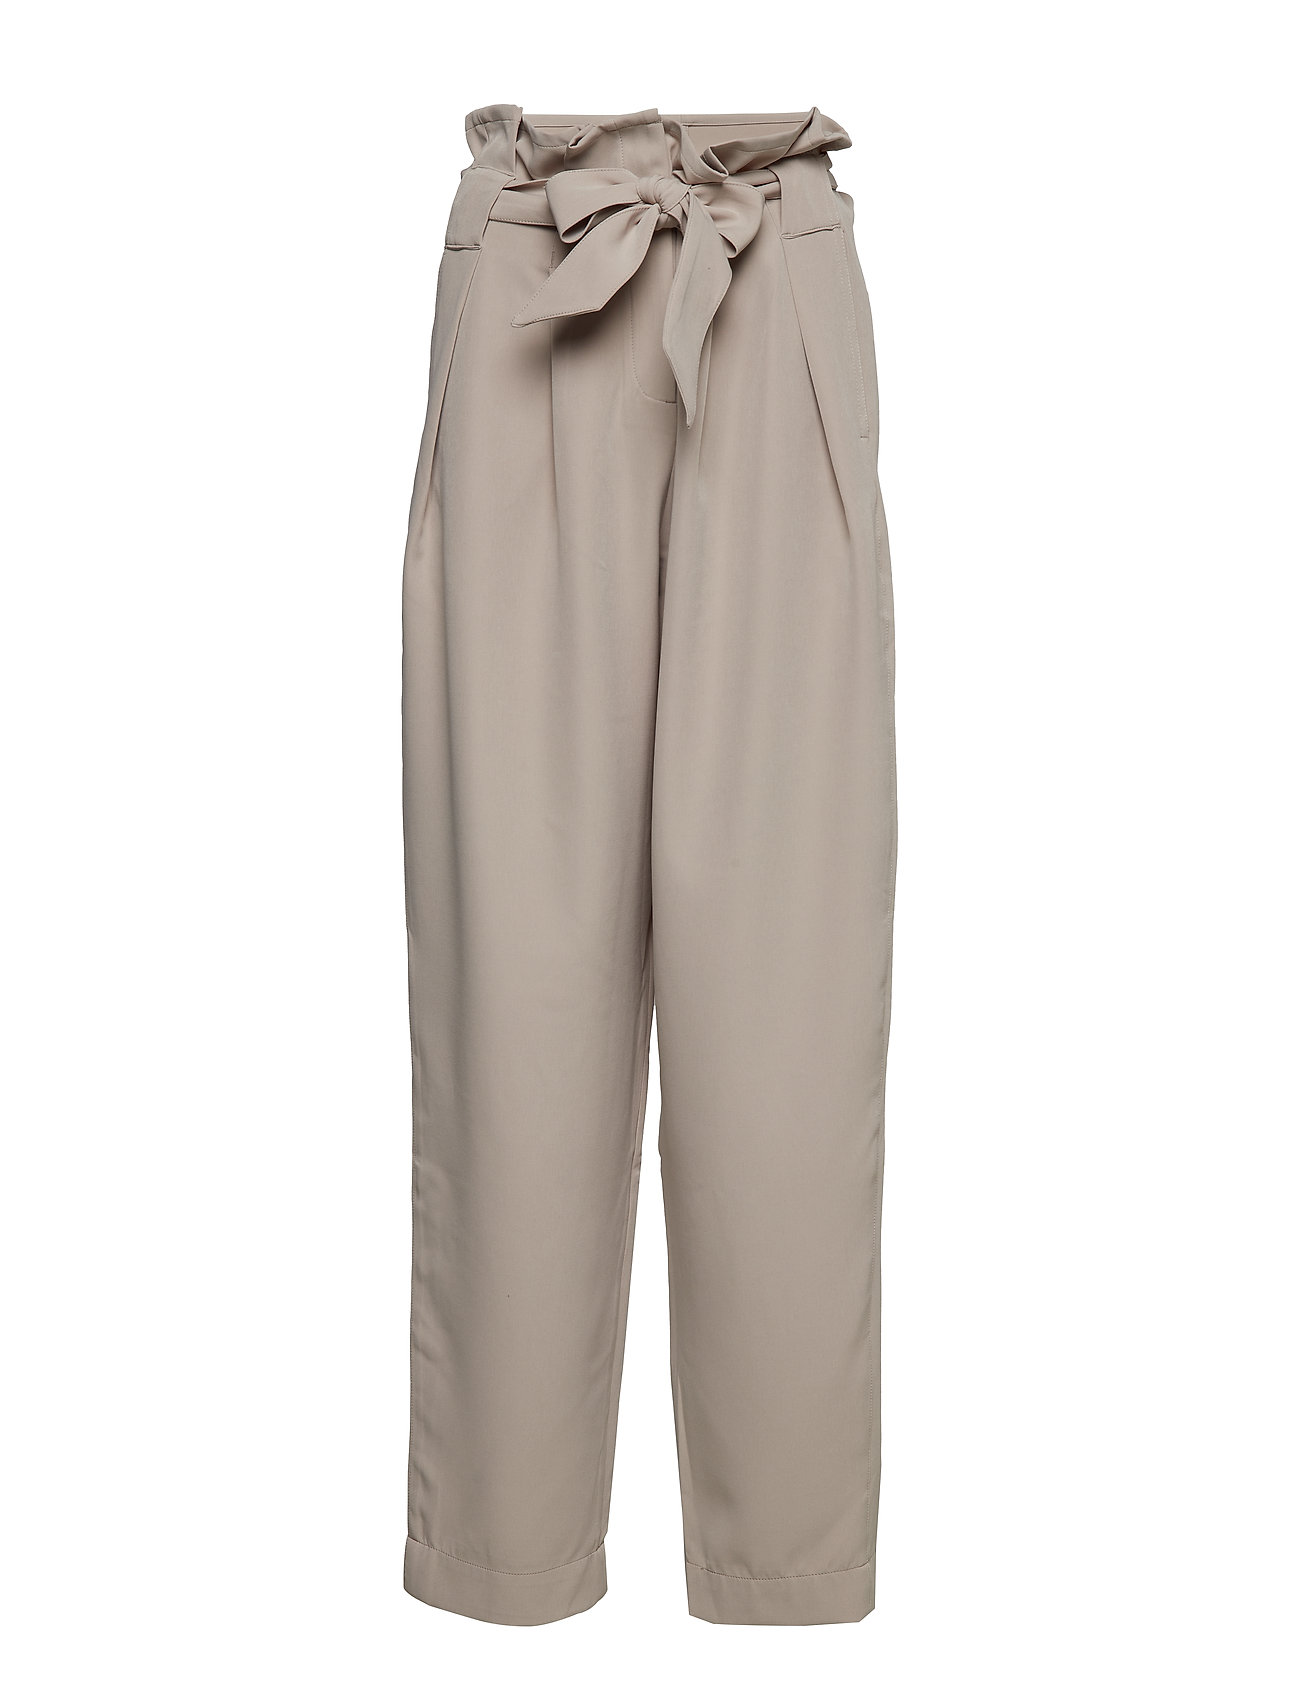 Image of Veronique Pleat Pants Bukser Med Lige Ben Beige DESIGNERS, REMIX (3145473375)